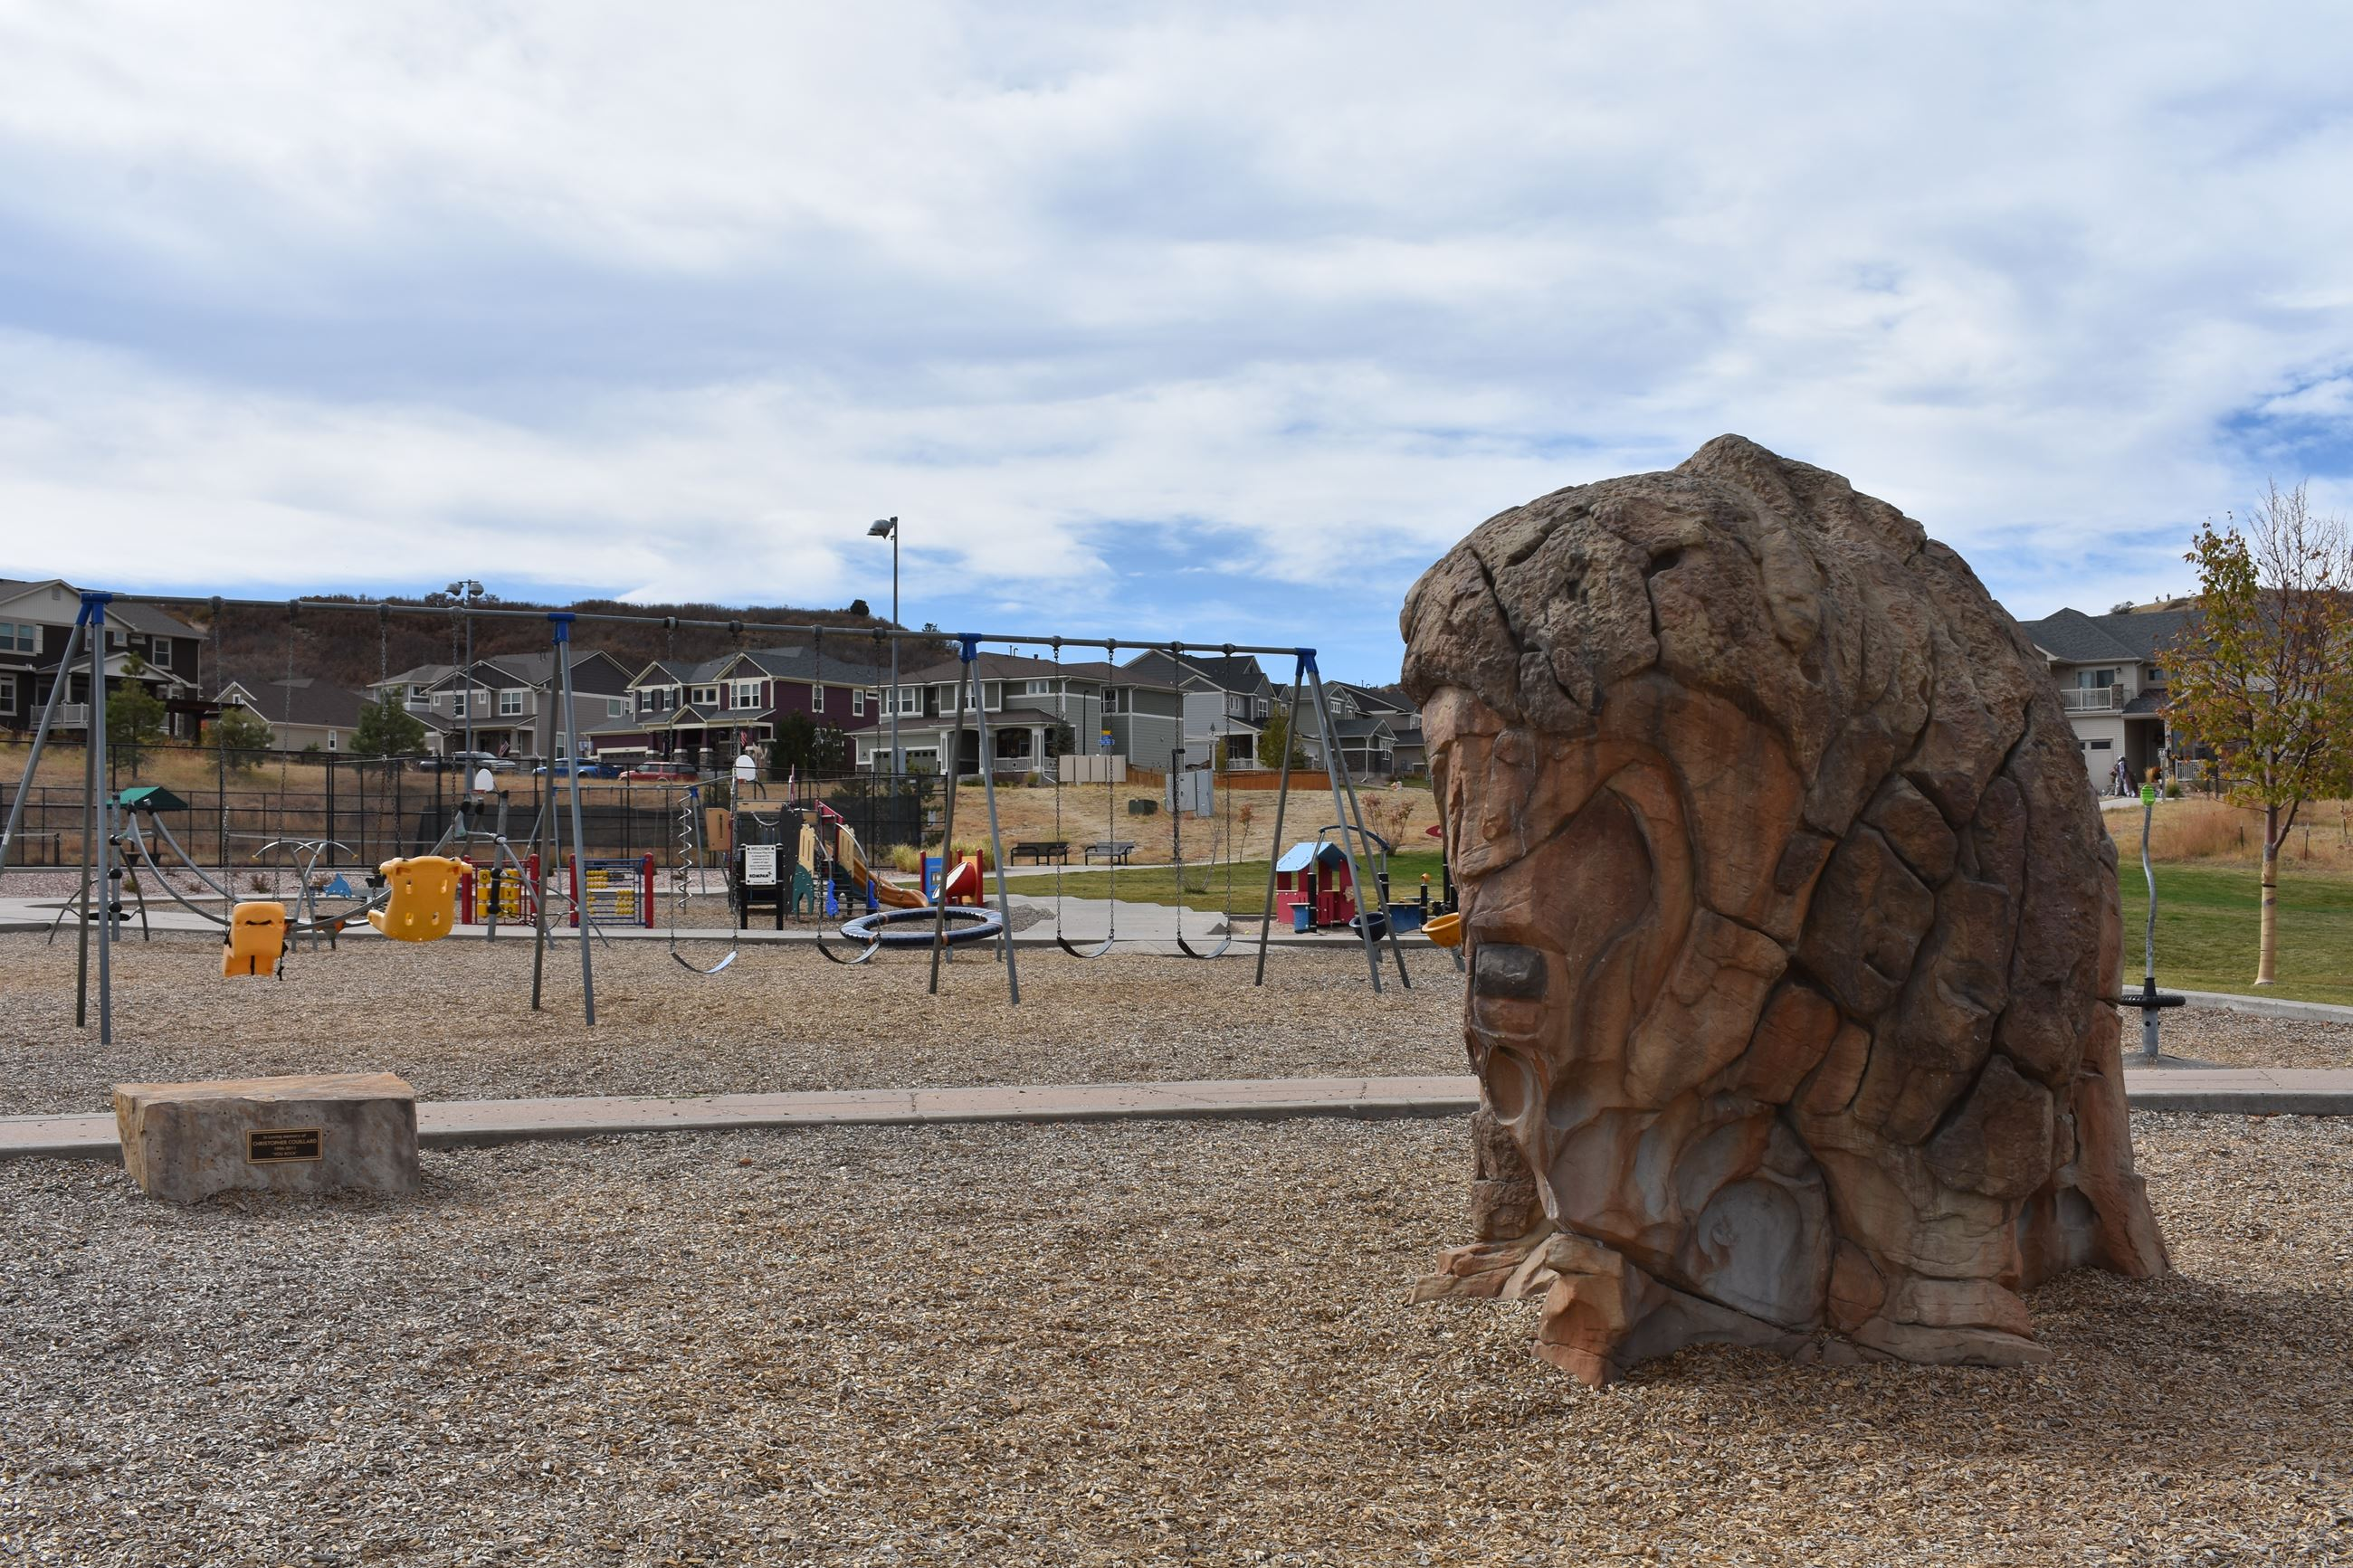 Bison and playground